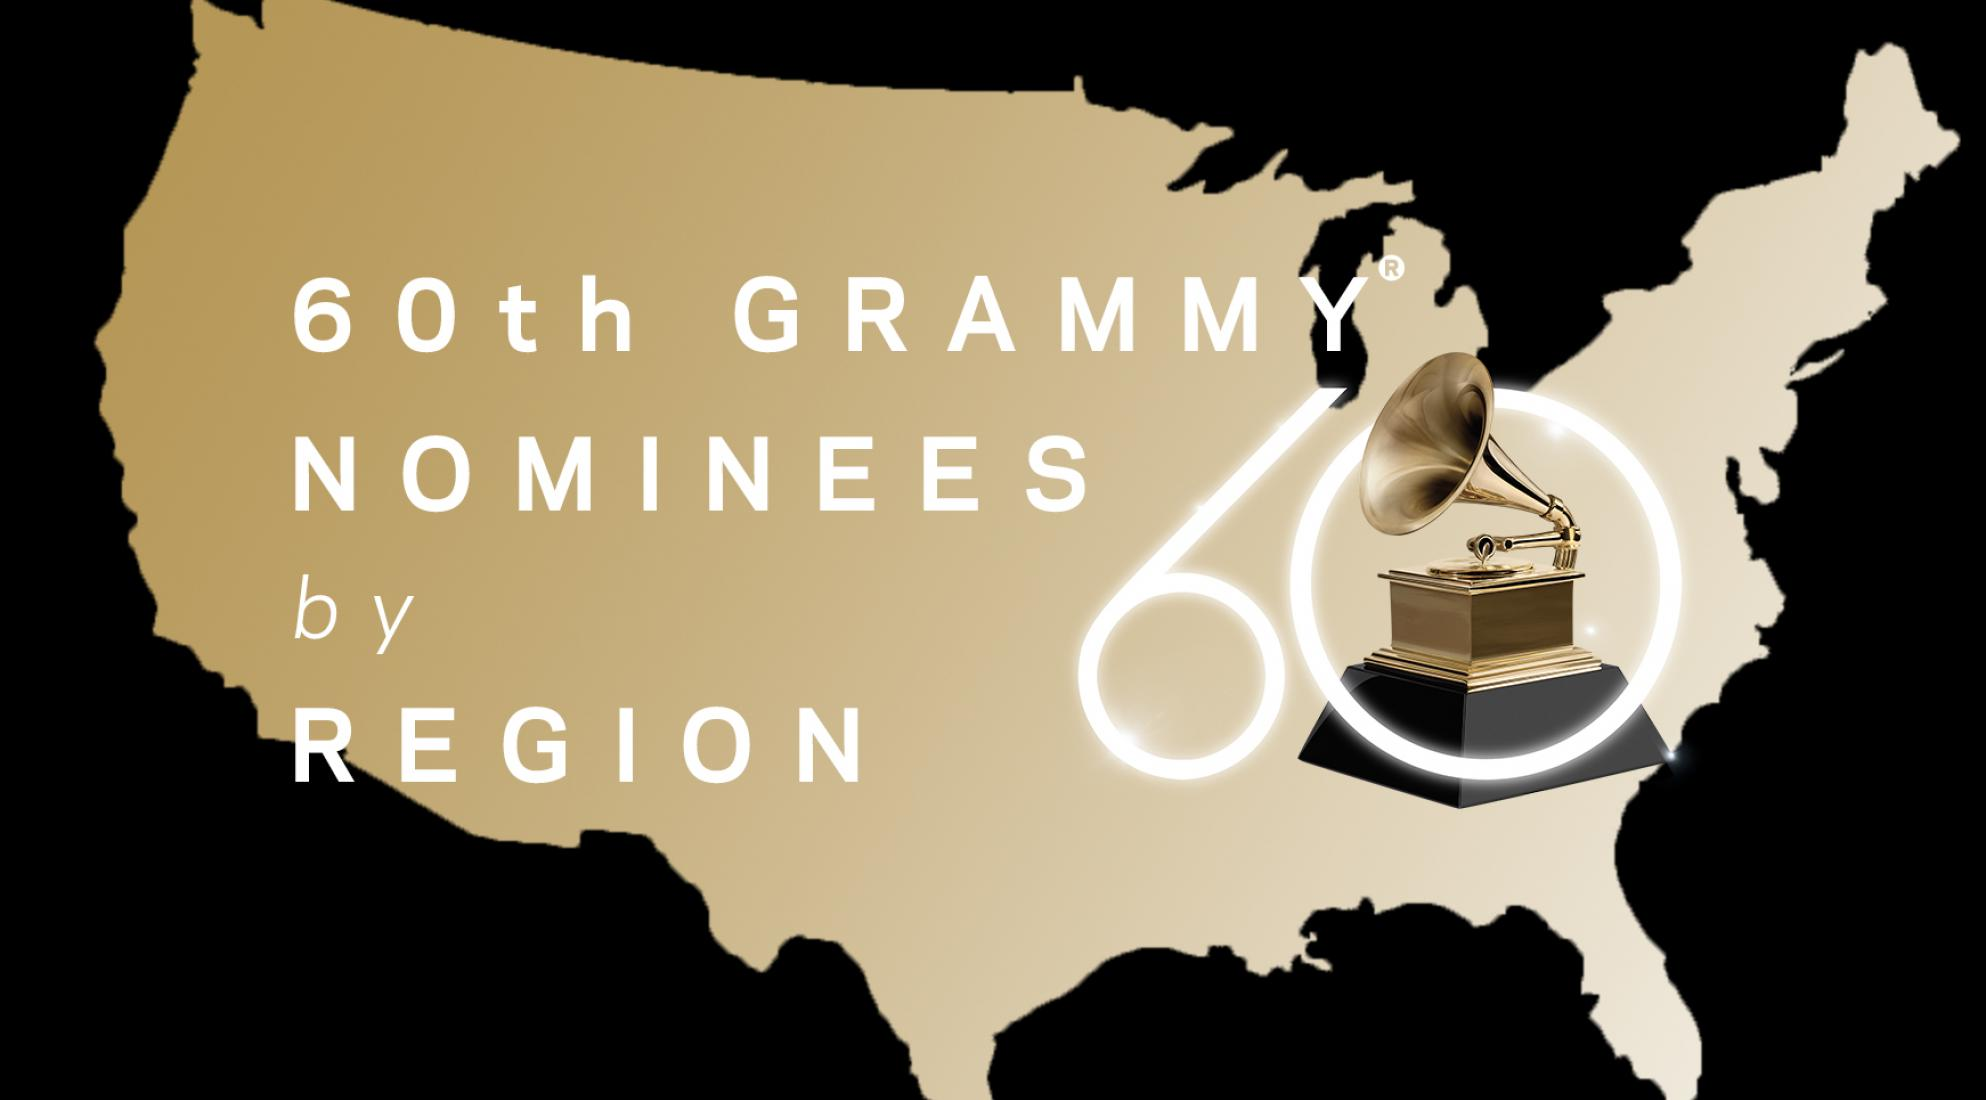 60th GRAMMY Nominees By Region